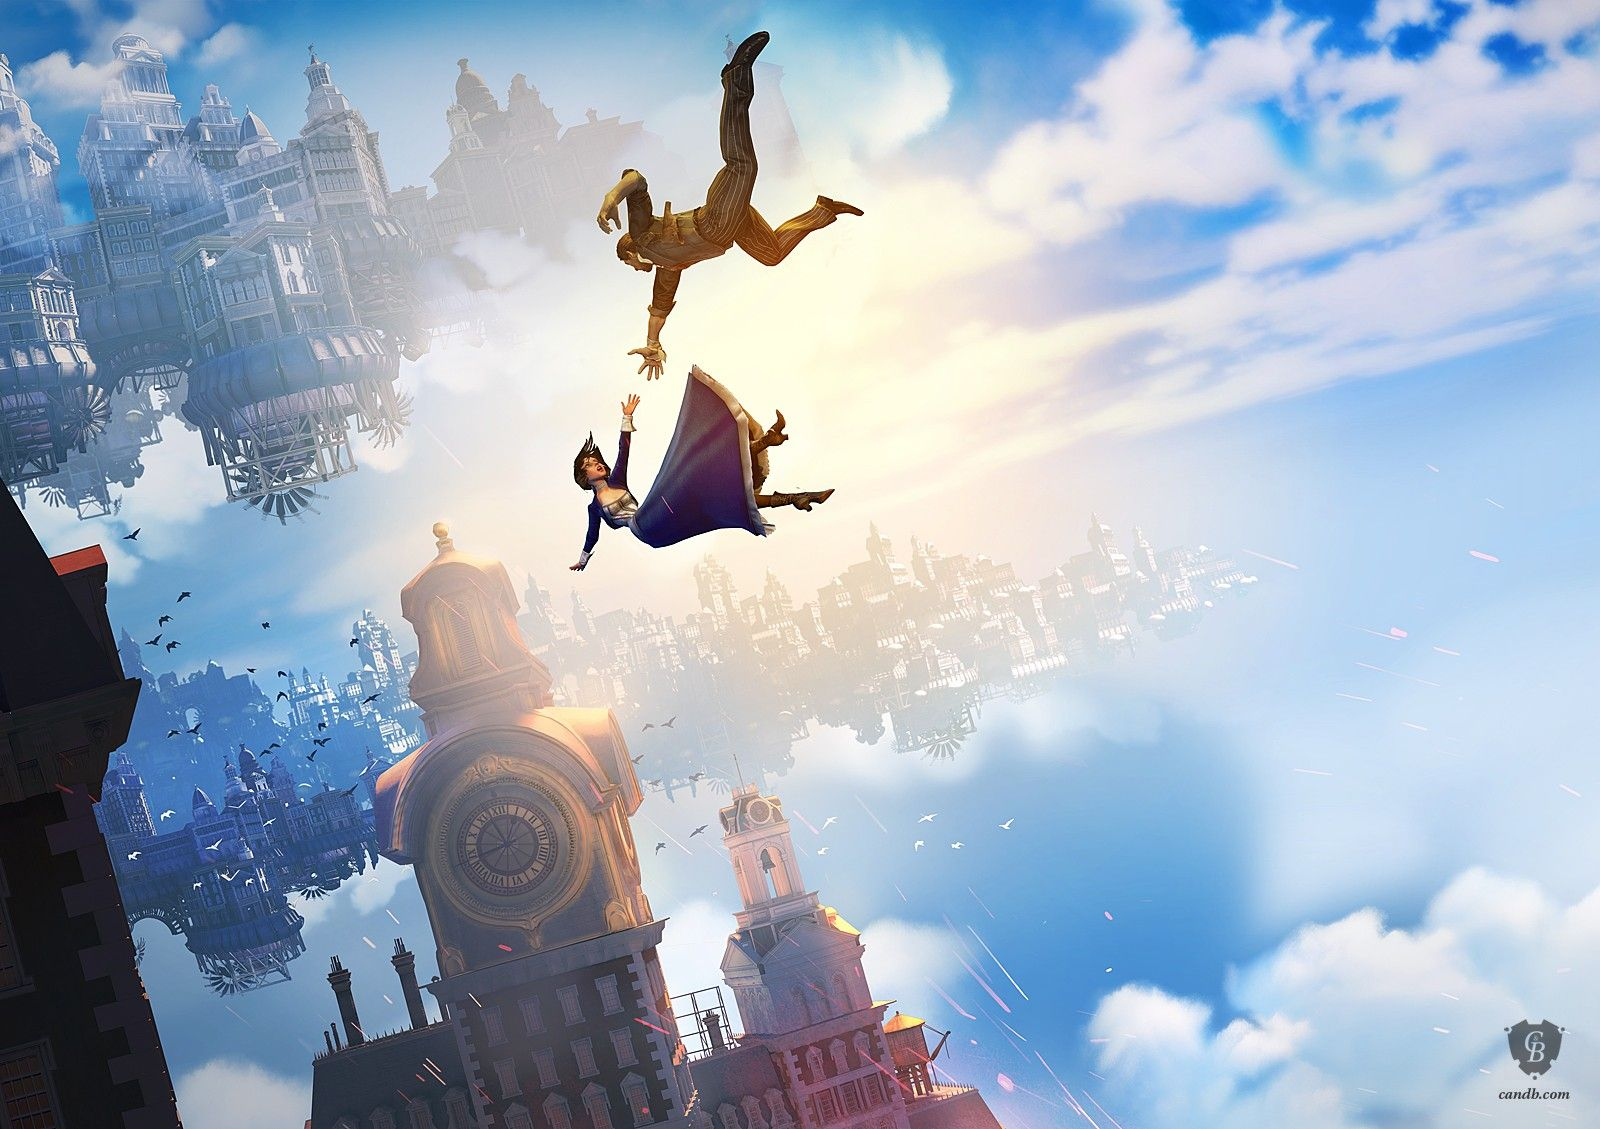 Falling - Bioshock Infinite - Falling is part of the